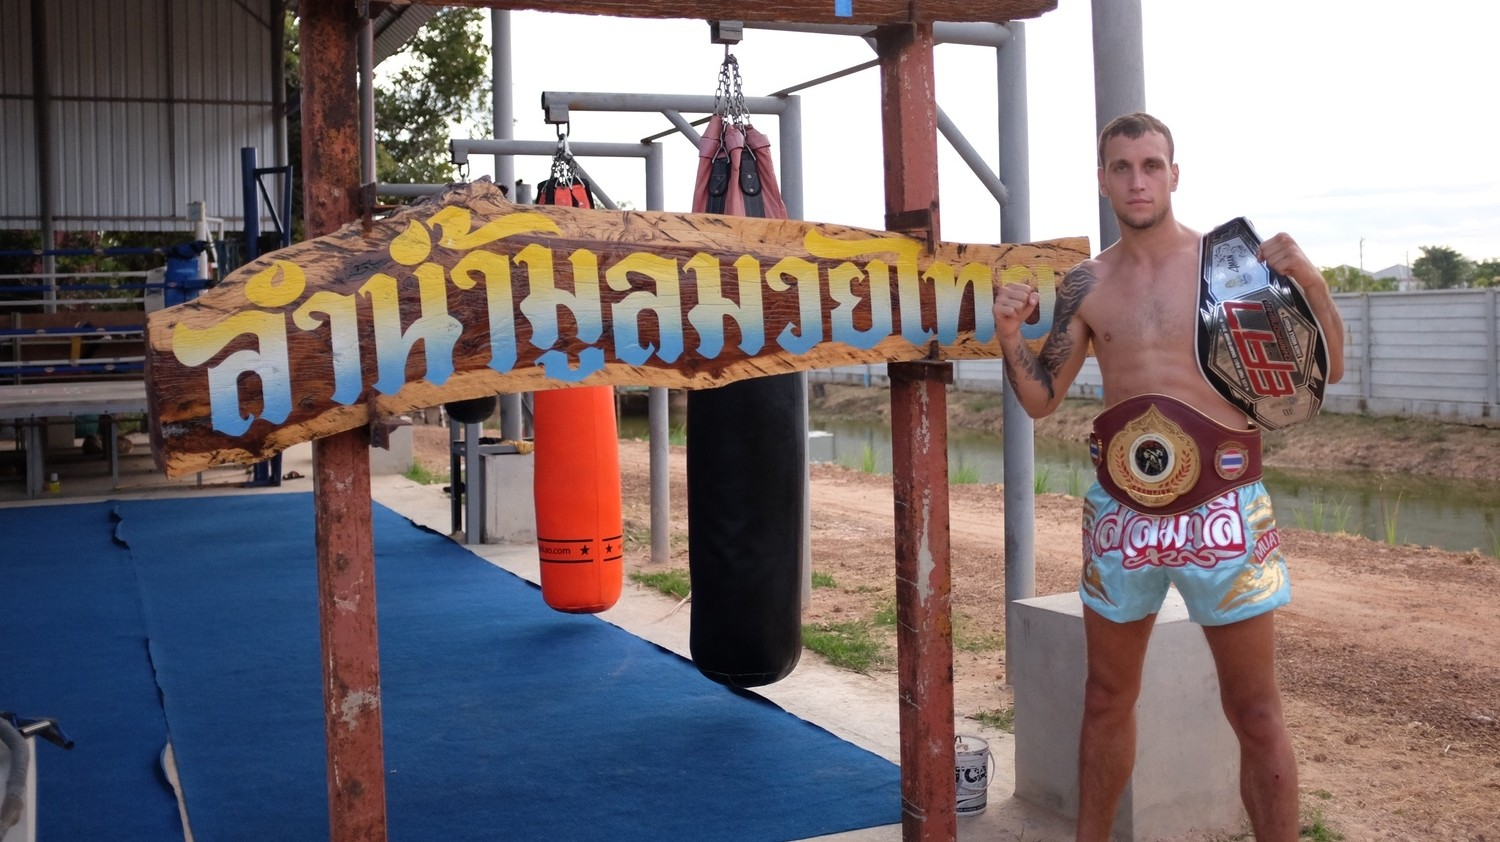 A Farang at Lamnamoon Muay Thai